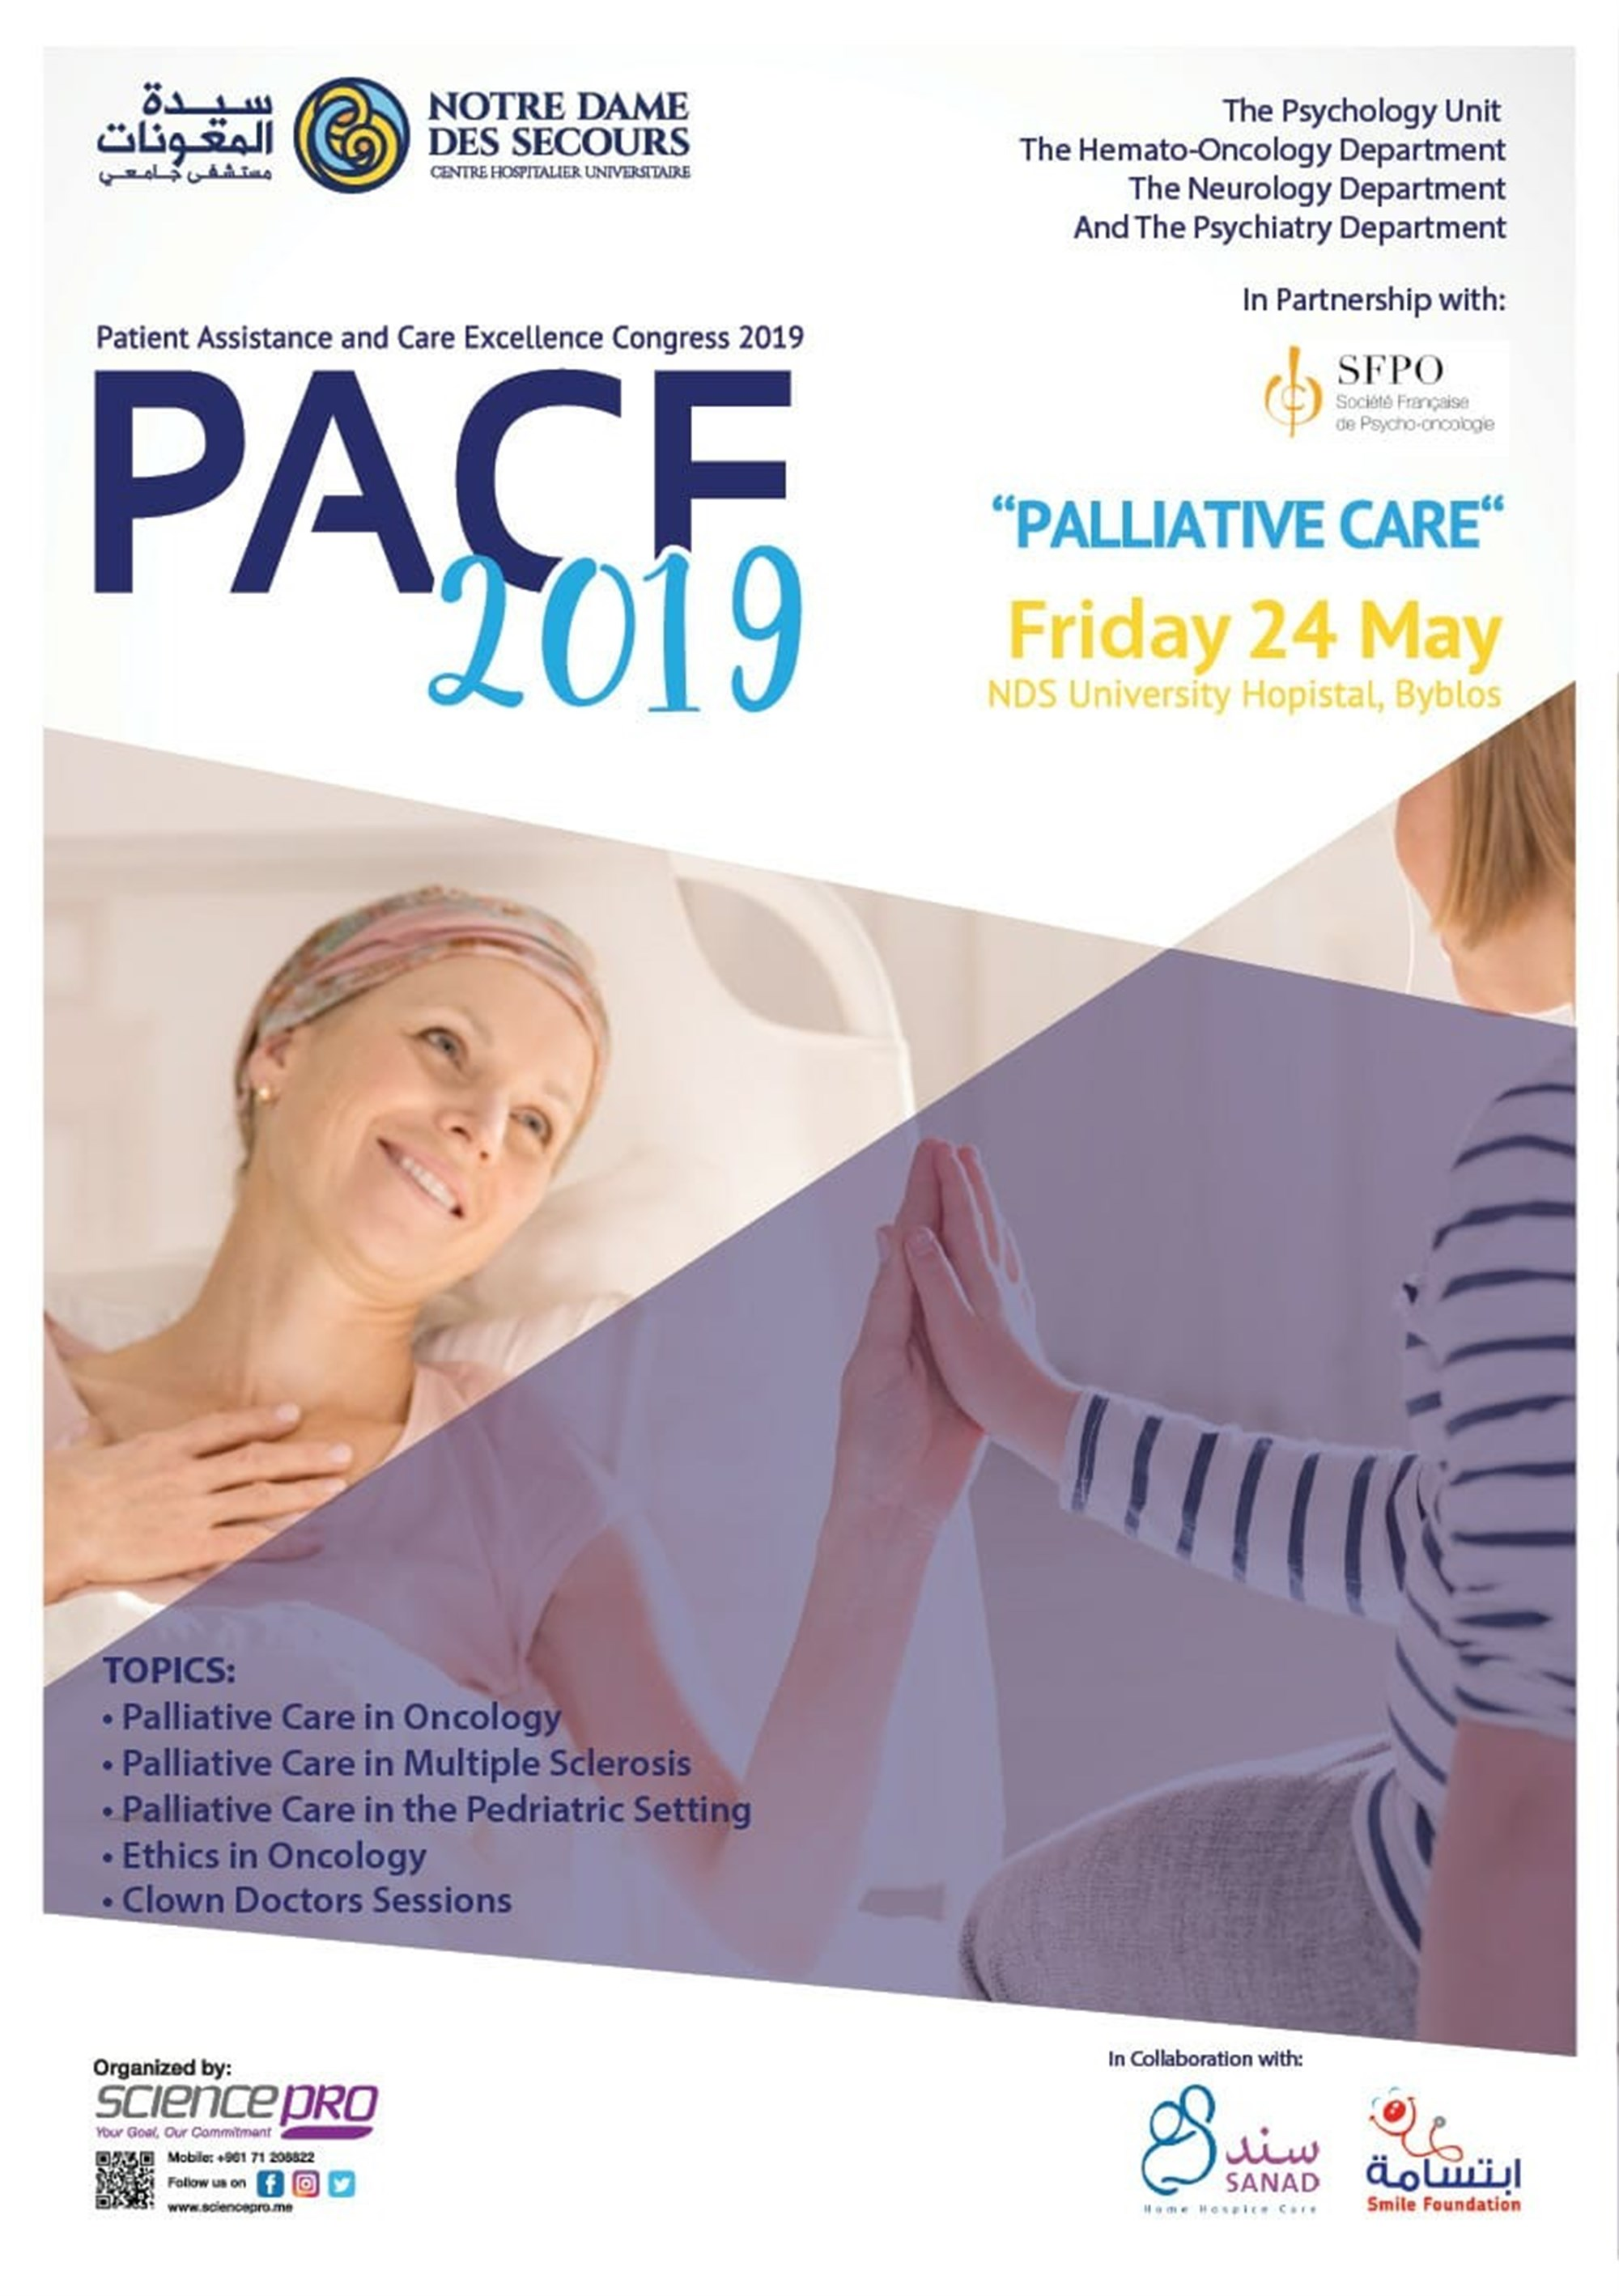 PACE 2019